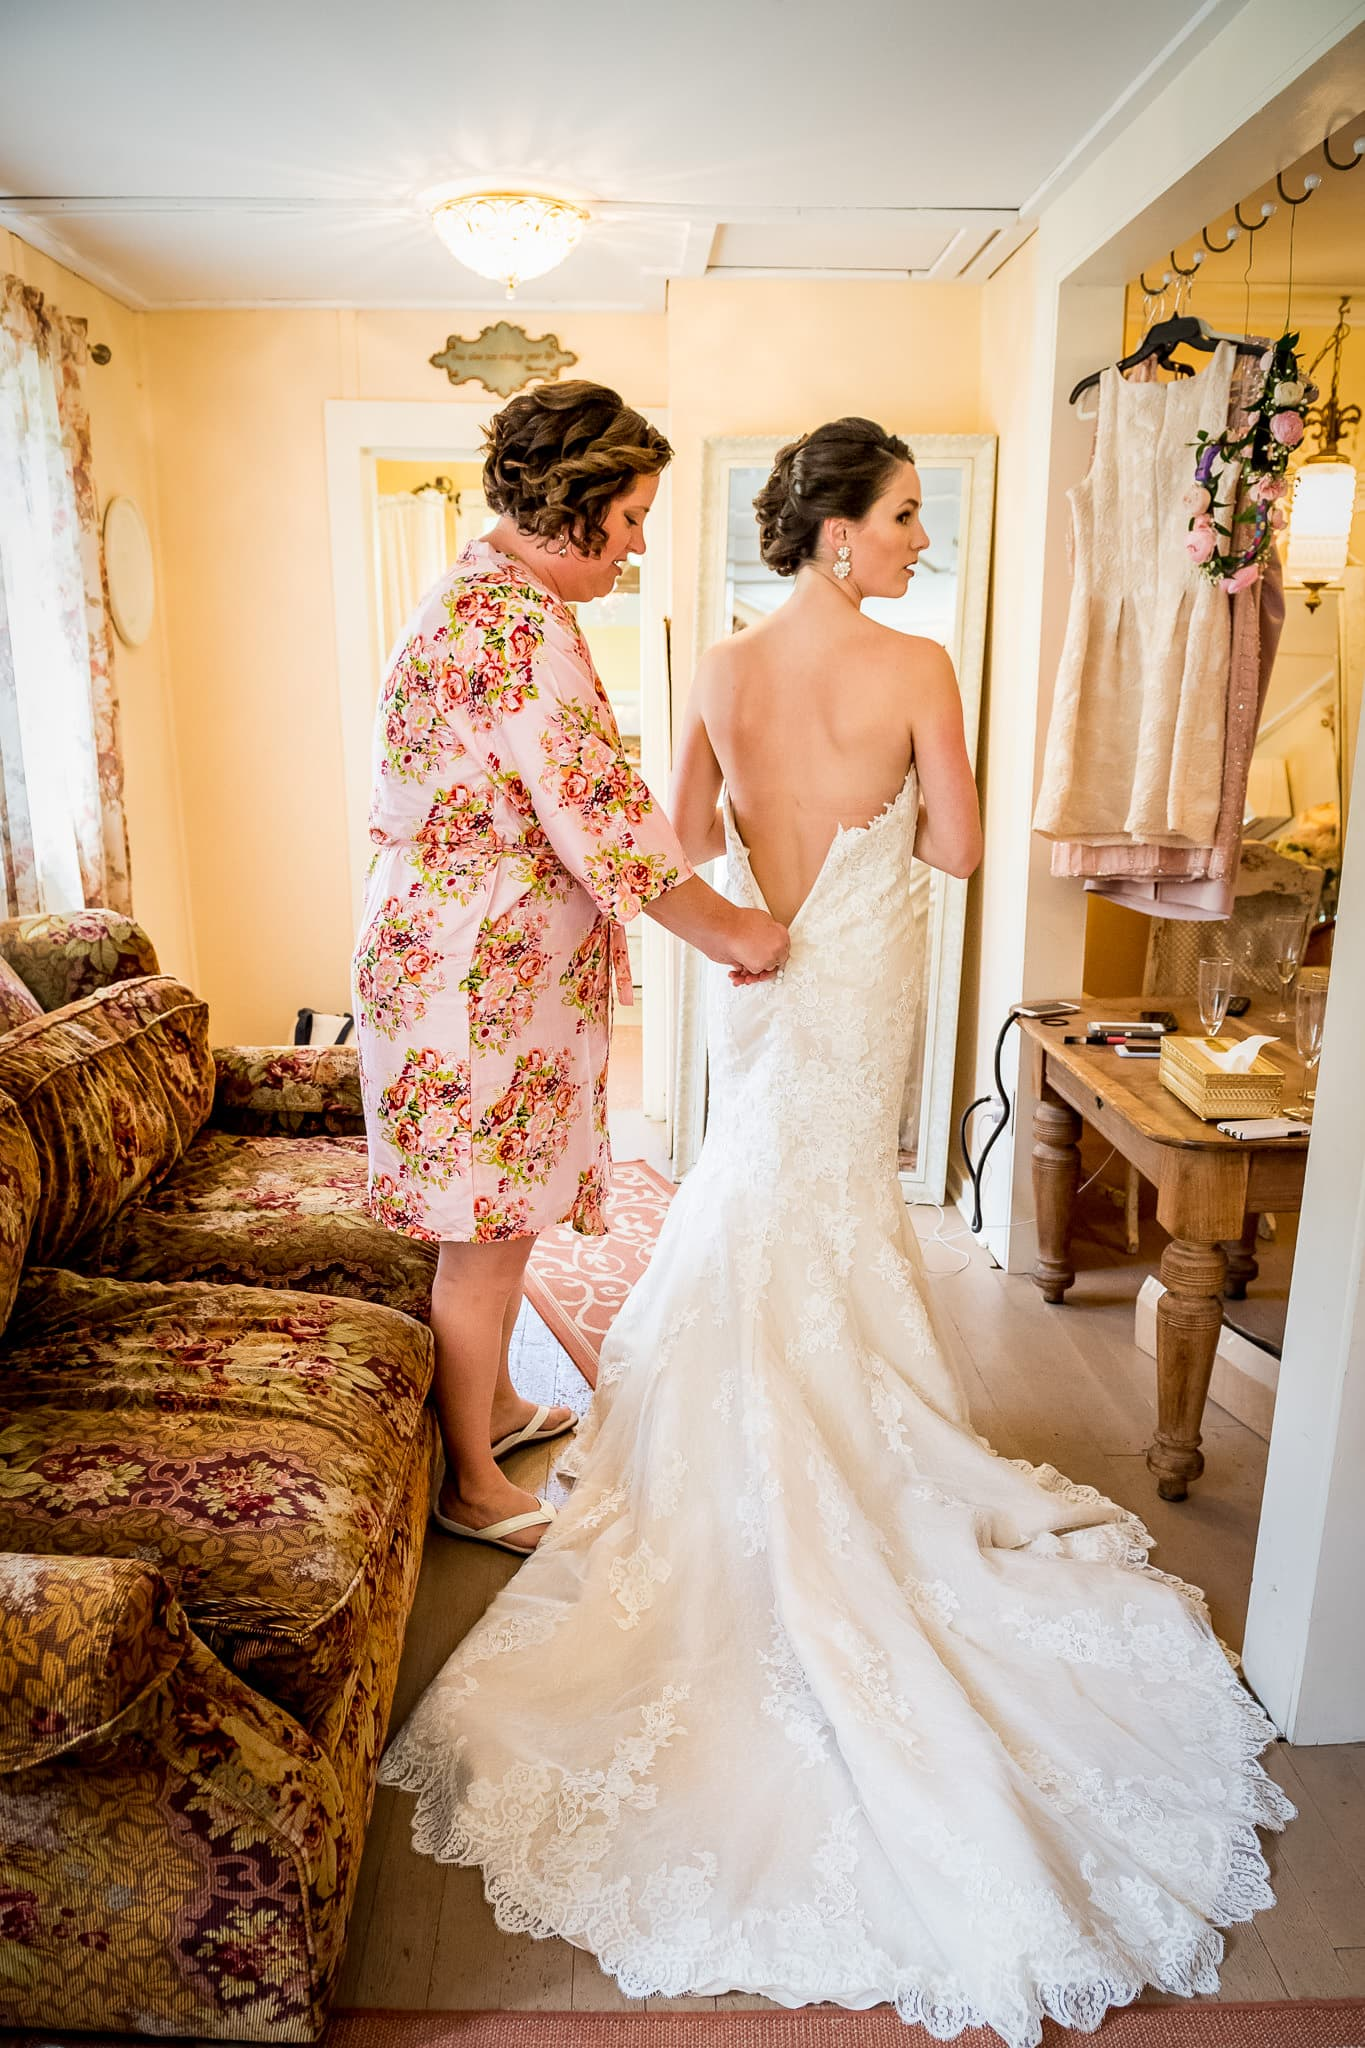 Bride's sister zips up her wedding dress at Camrose Hill Flower Farm wedding